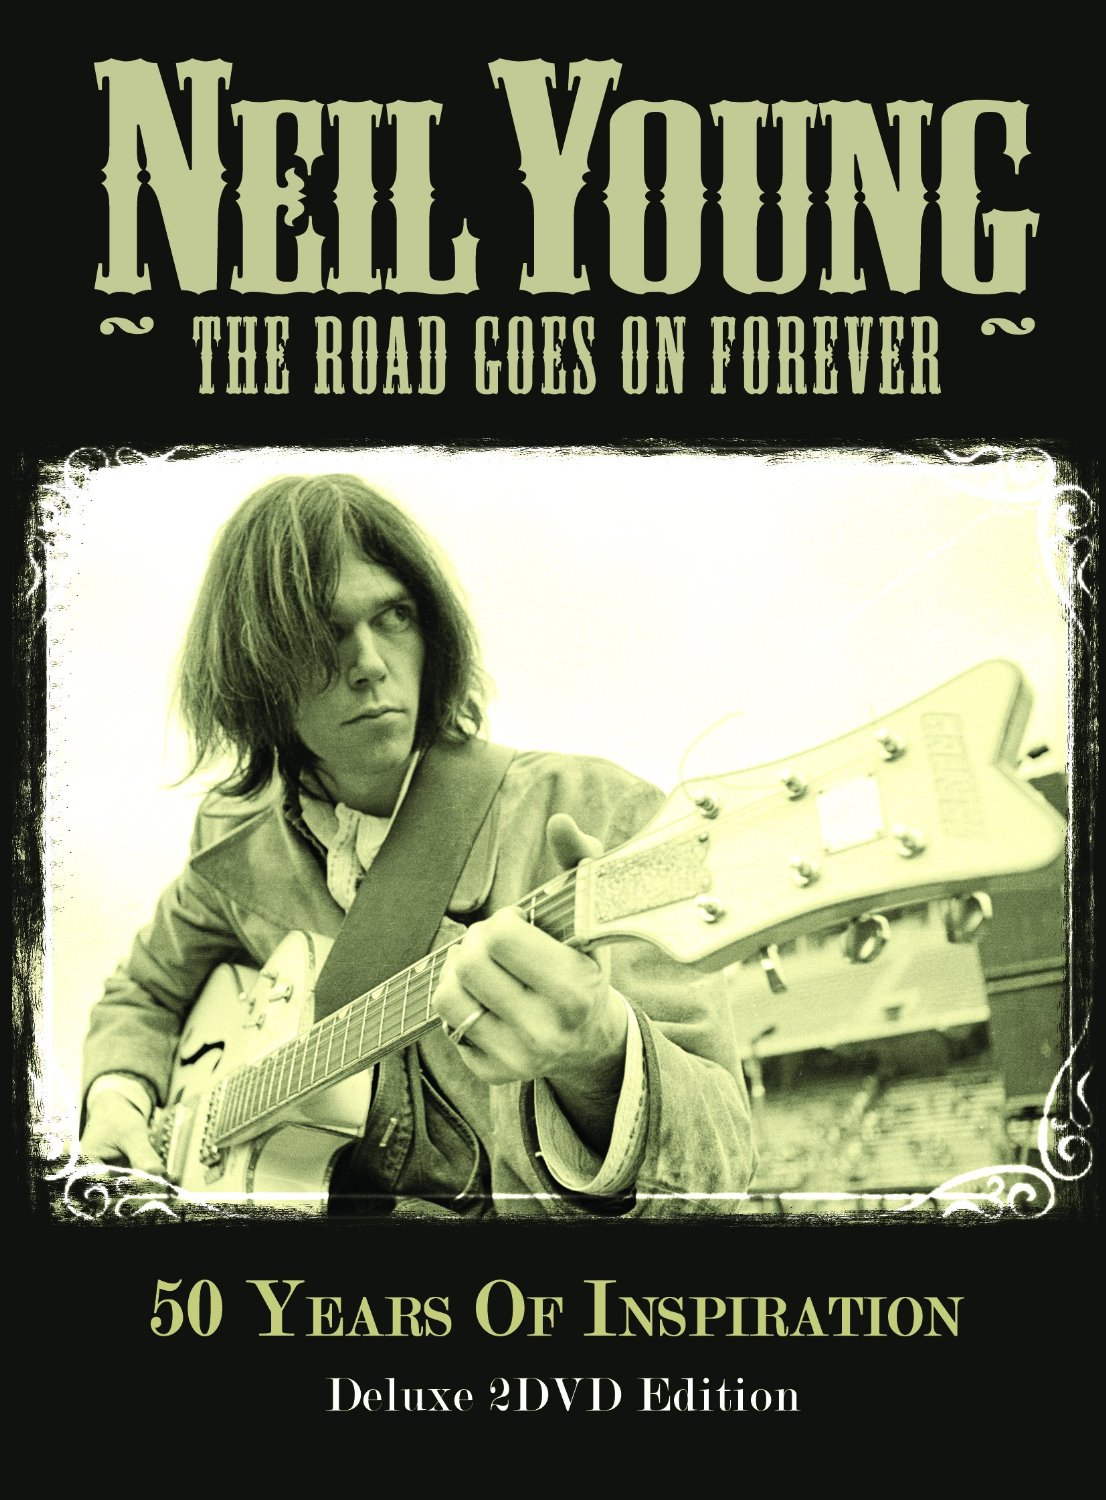 Neil Young - The road goes on forever